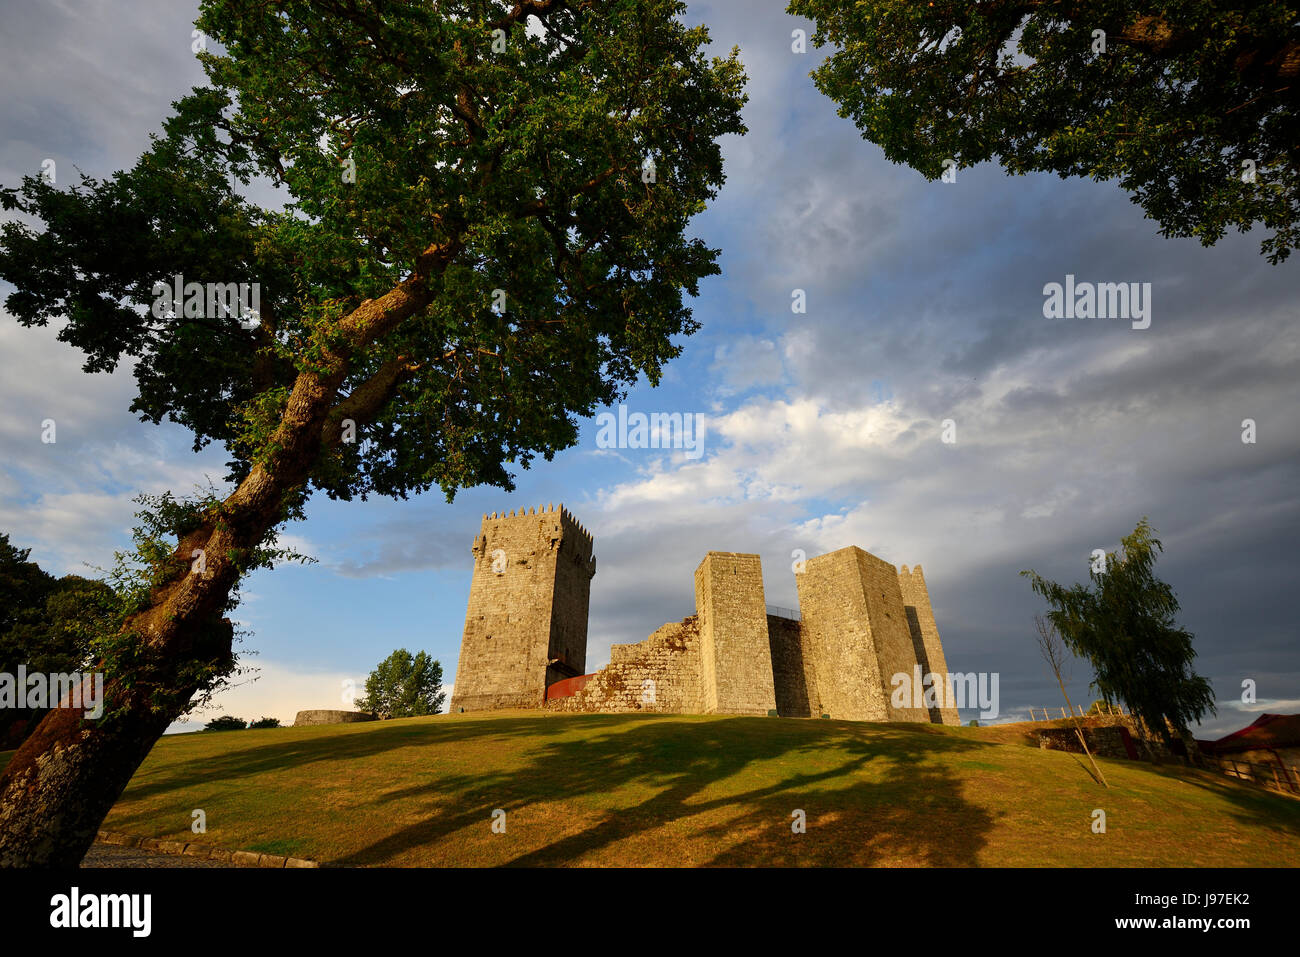 The medieval castle of Montalegre at sunset, dating back to the 13th century. Tras os Montes, Portugal Stock Photo